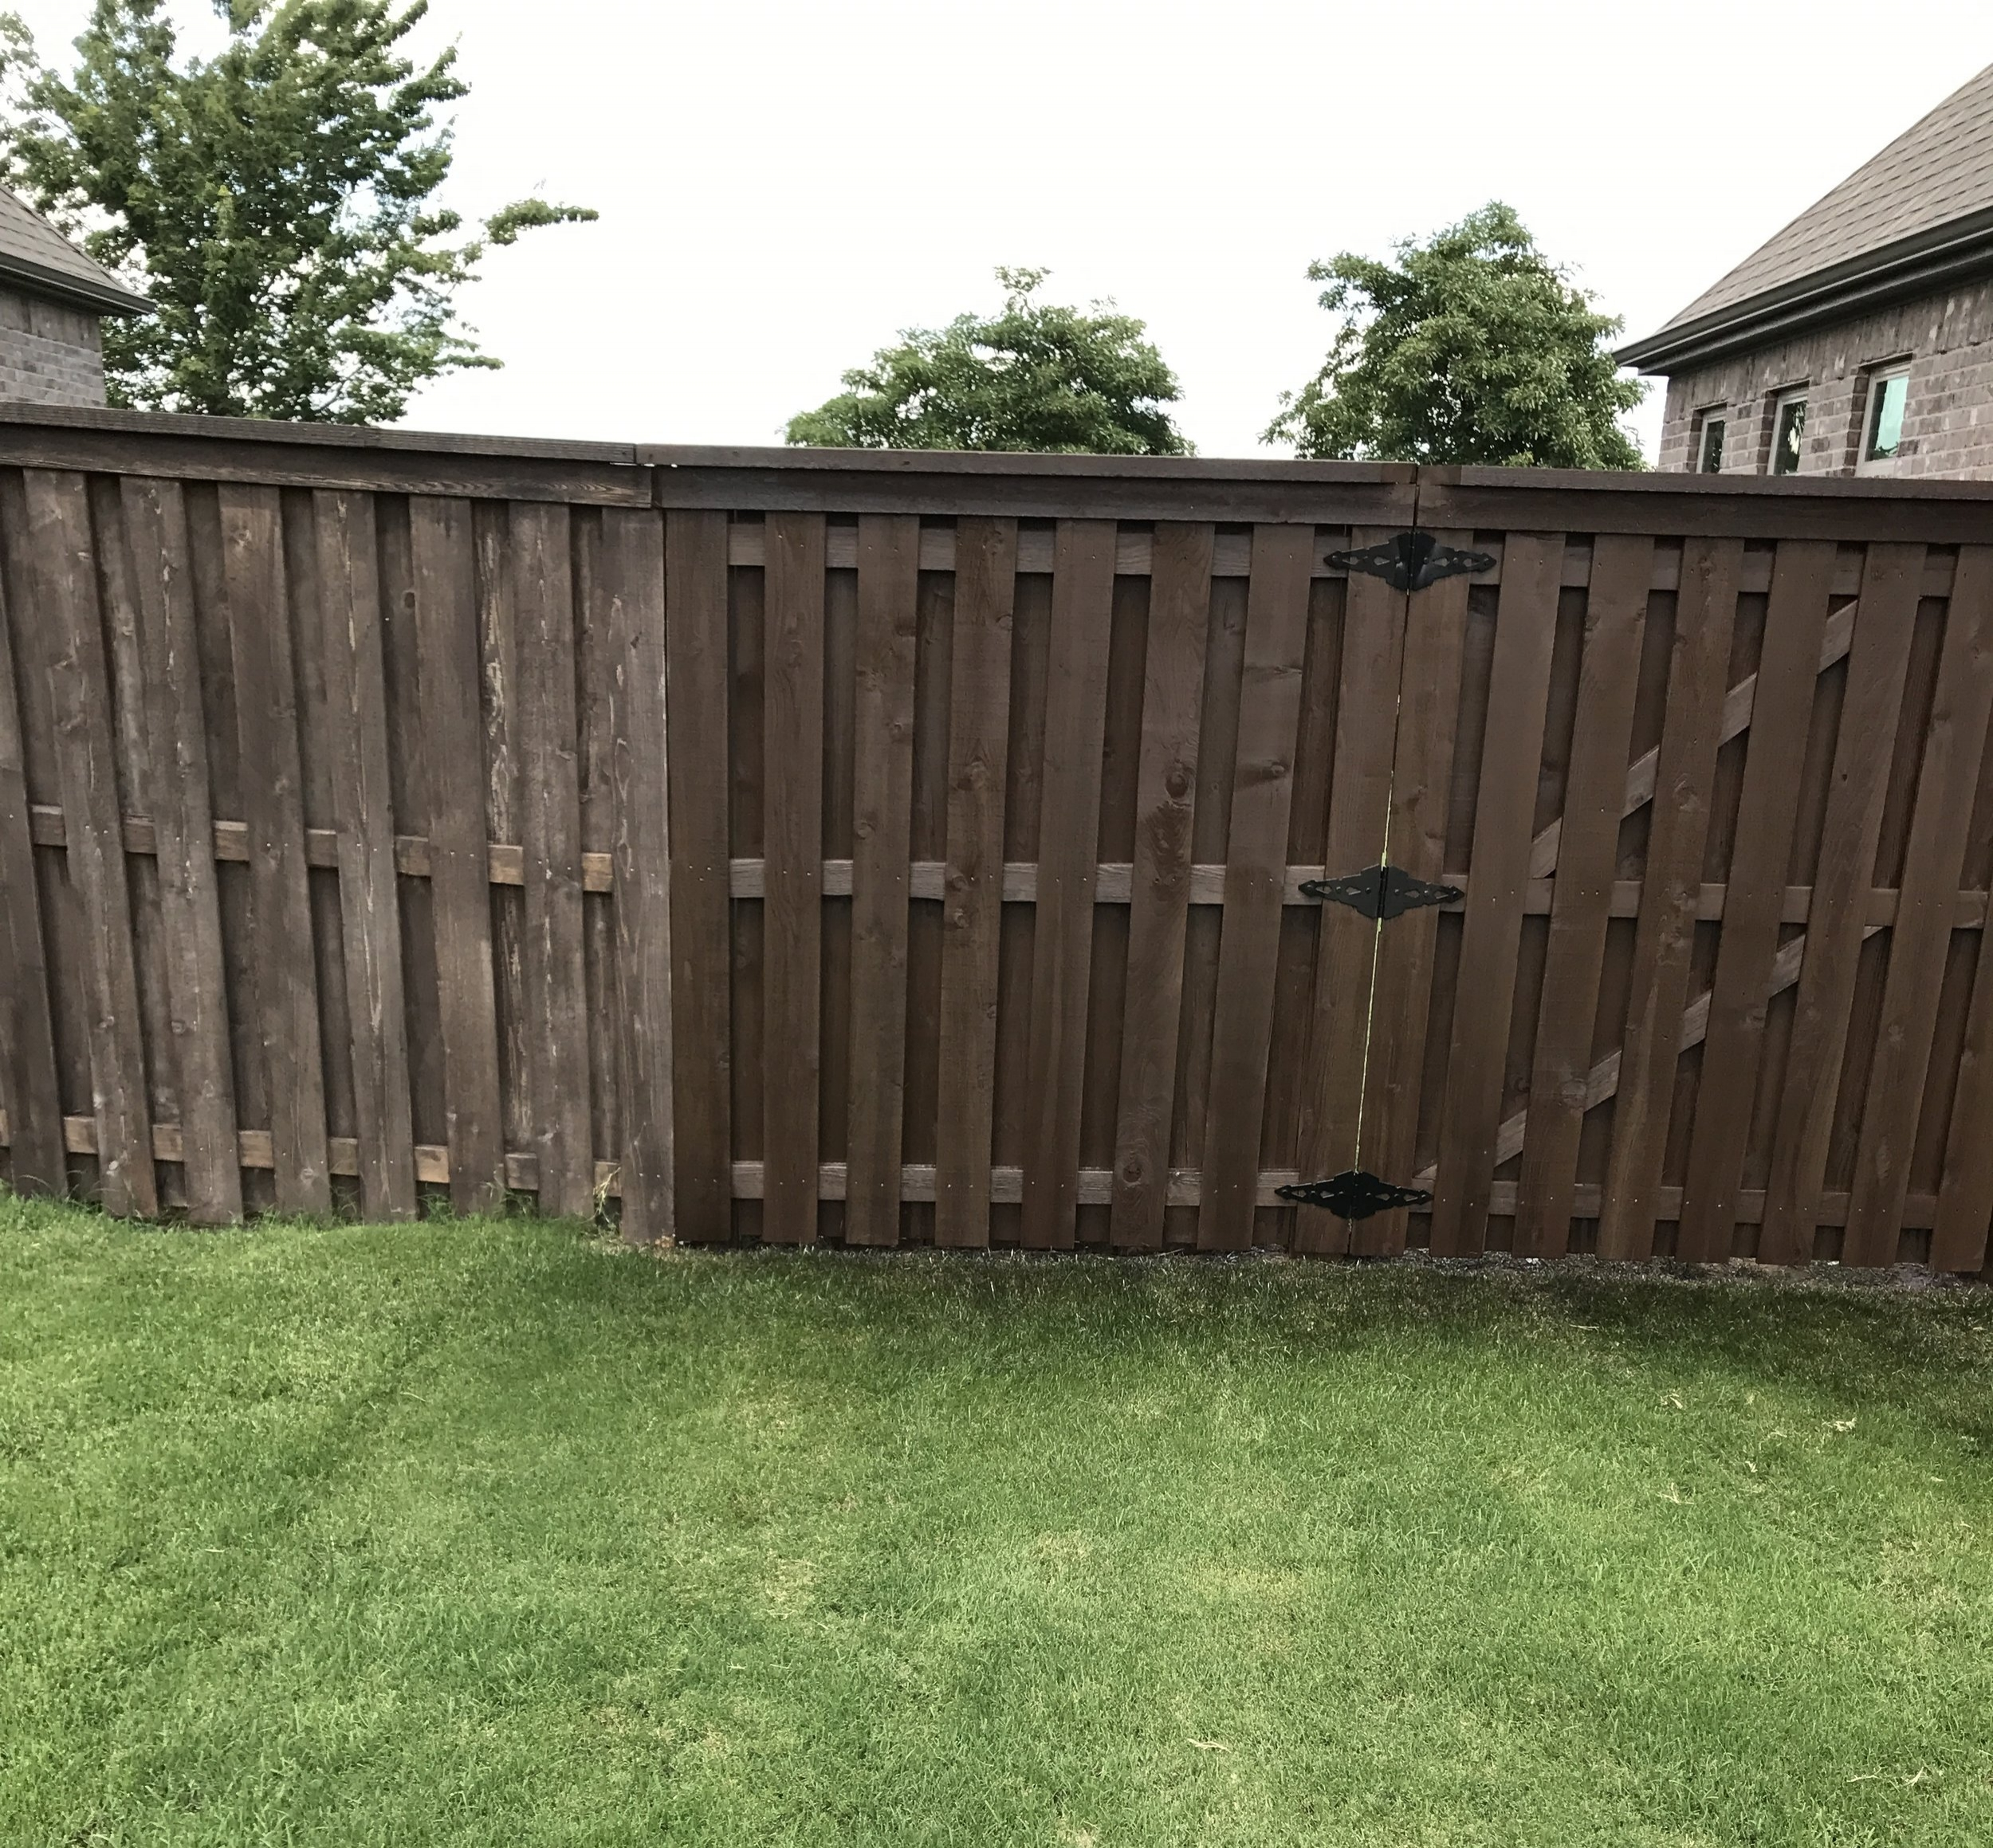 Fence Staining Company - Before and After